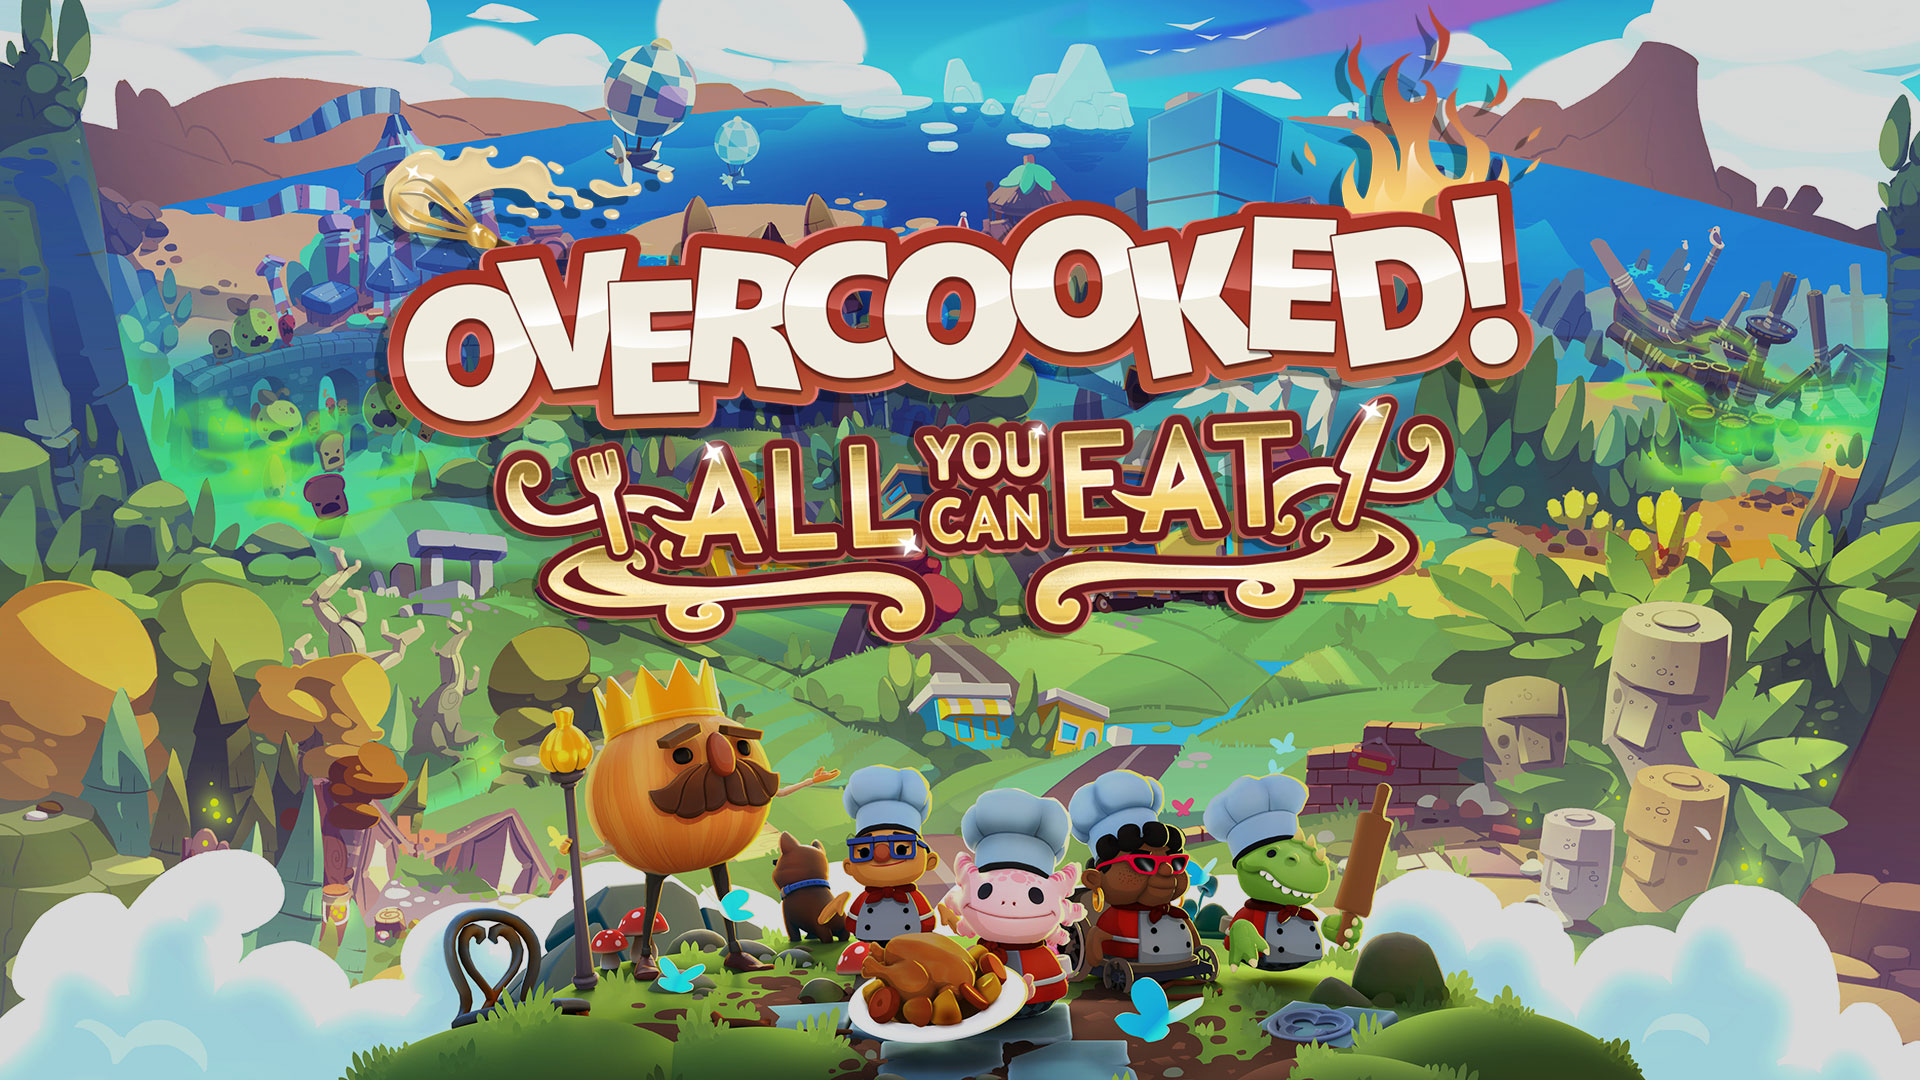 Introducing: Overcooked! All You Can Eat | Team17 Group PLC